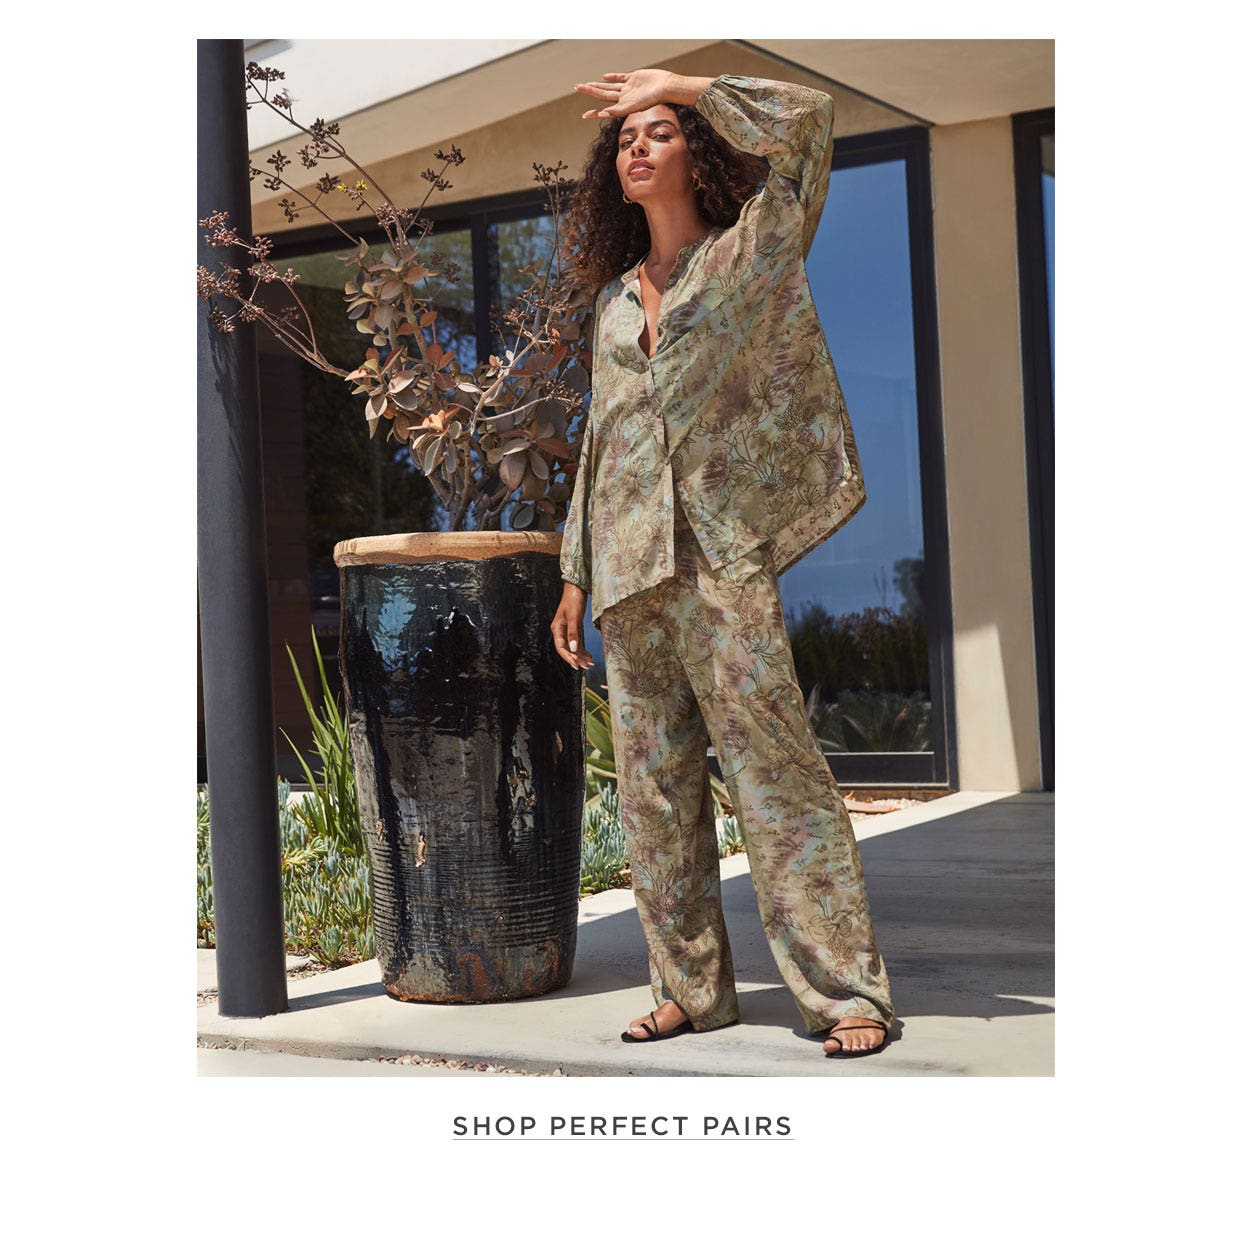 Shop Perfect Pairs